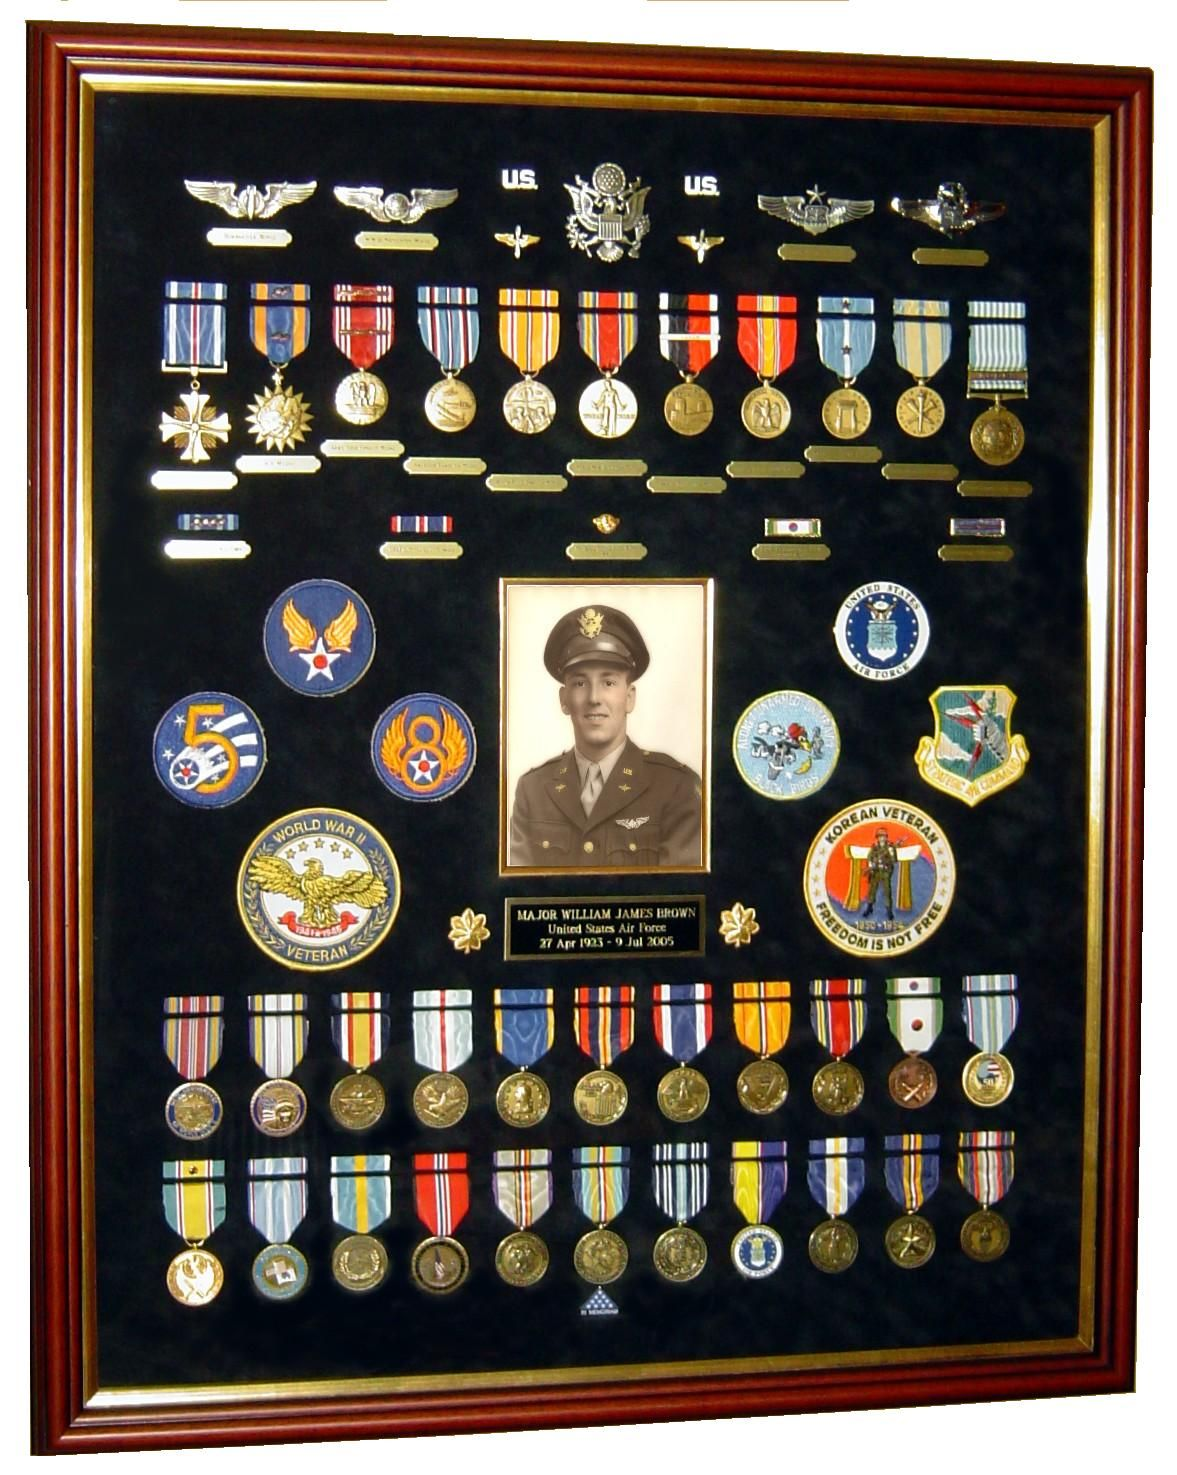 My Dad S Air Force Decorations Commemorative Medals Military